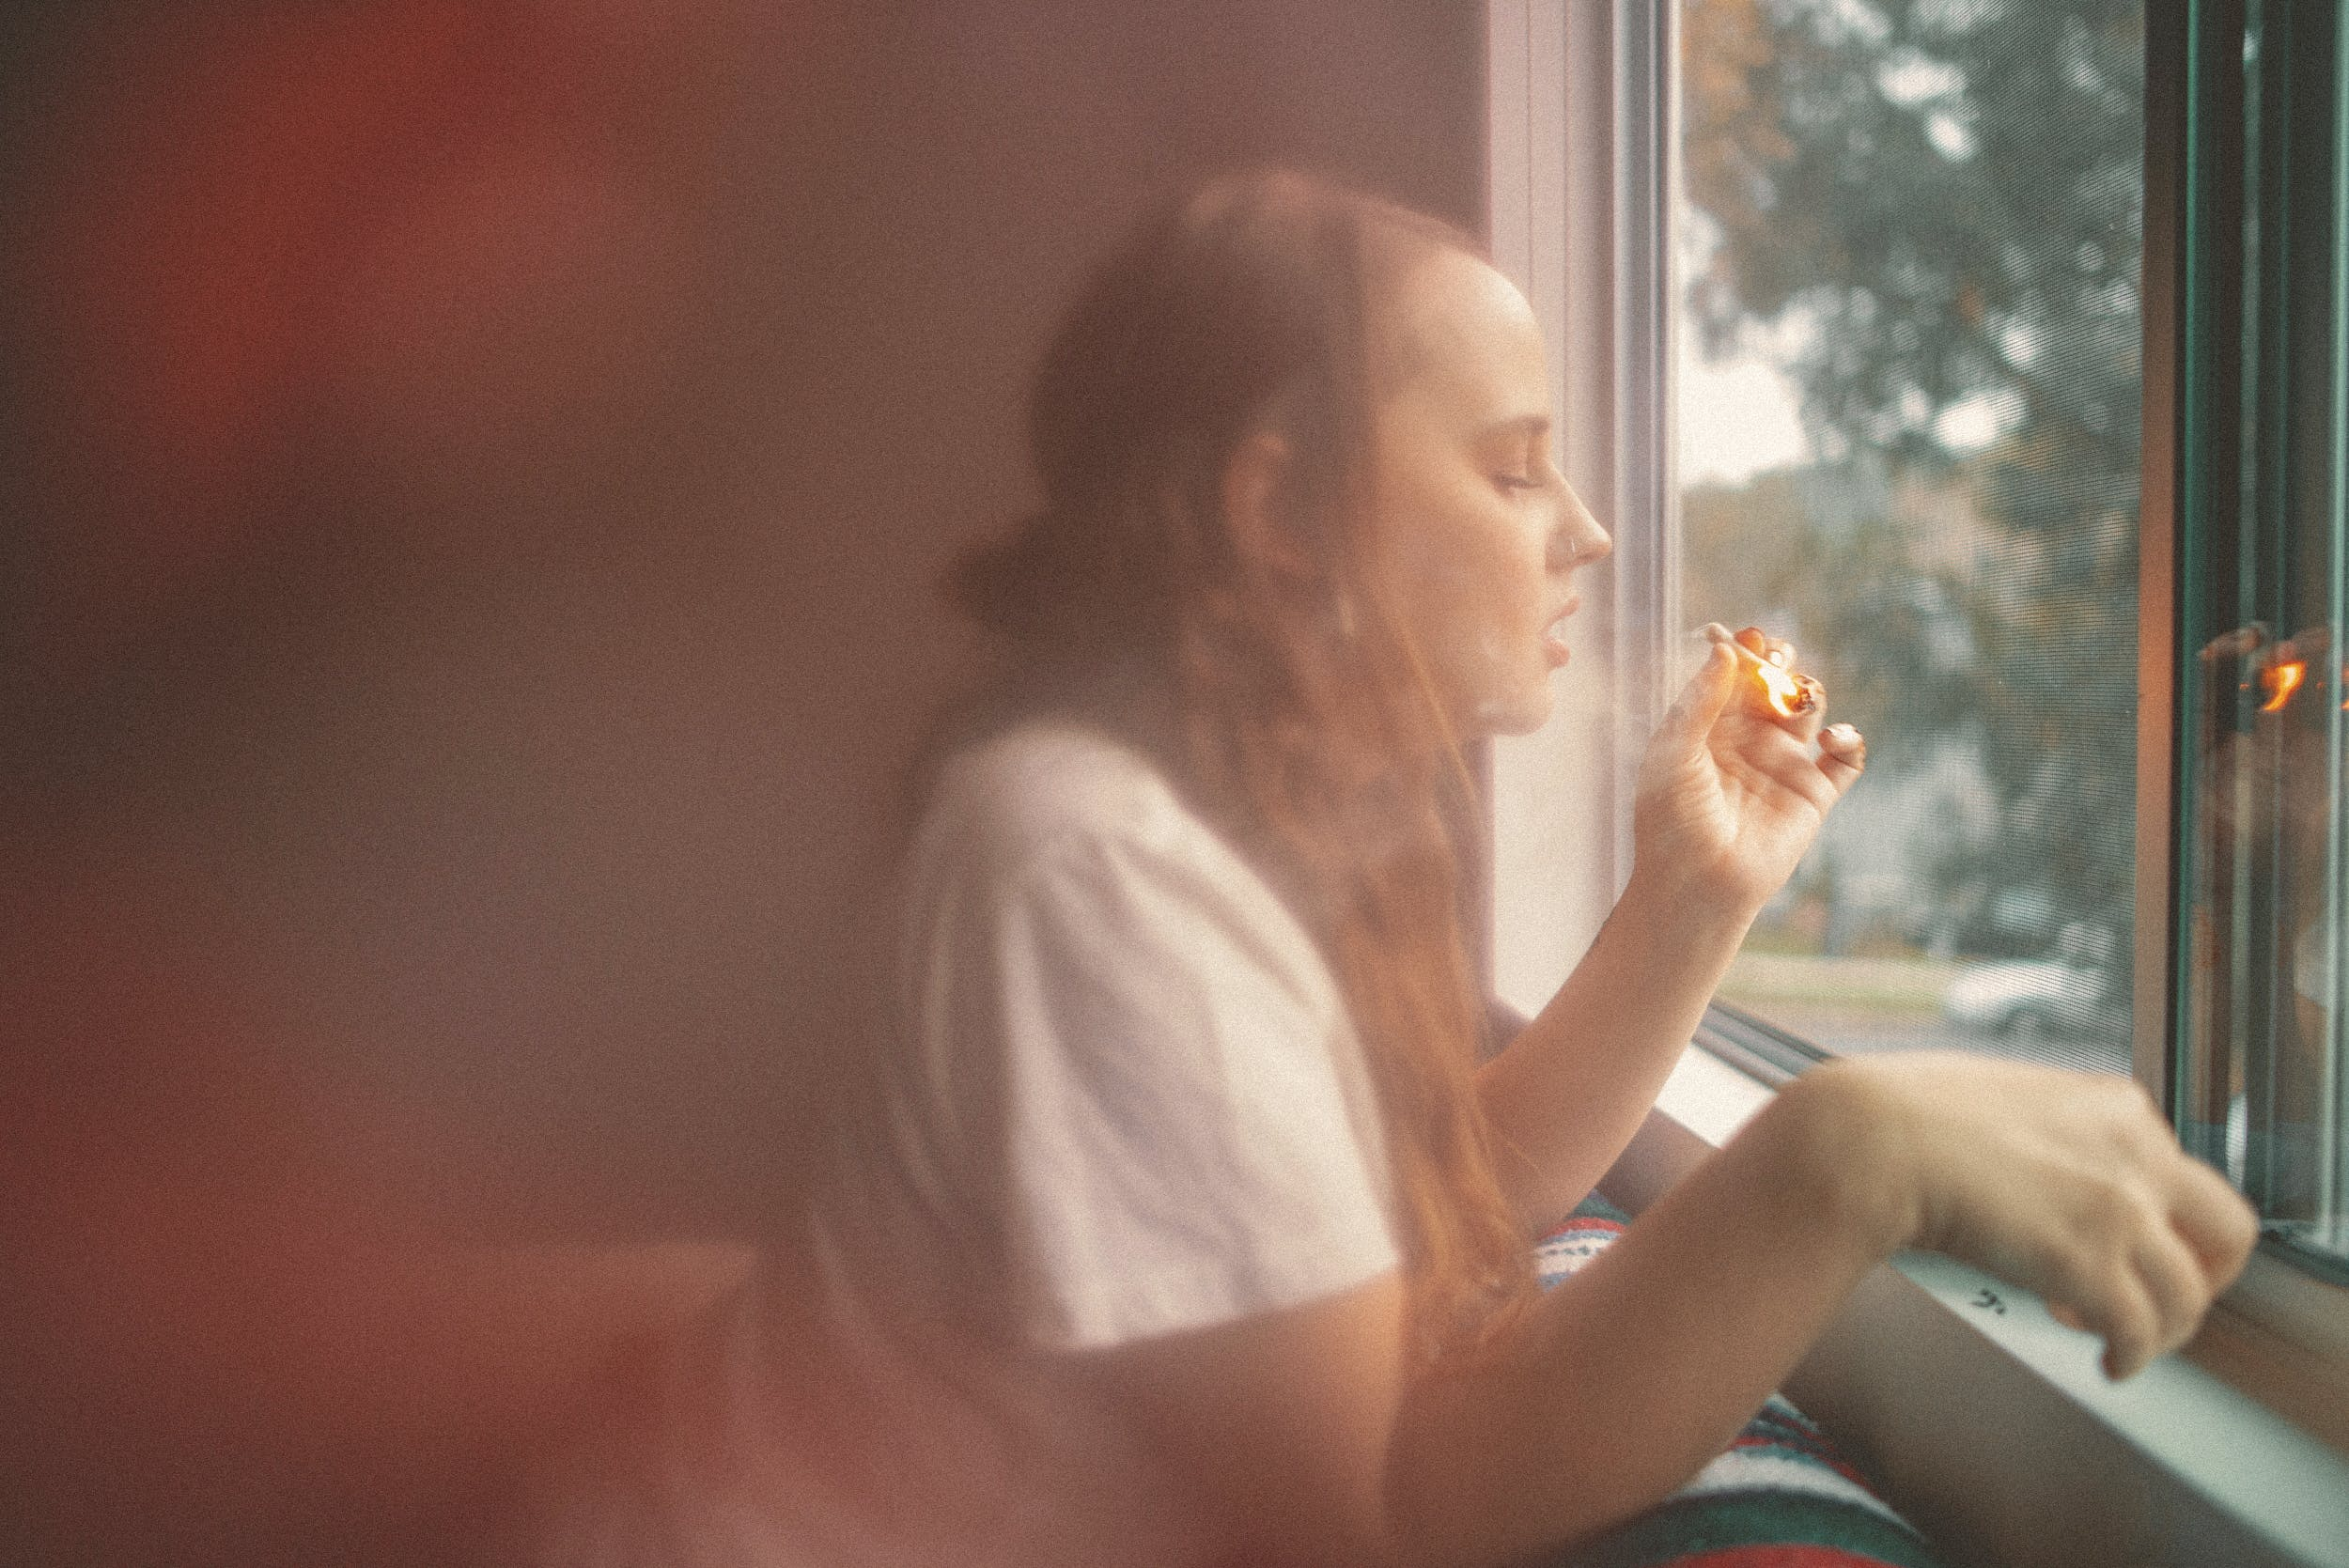 A woman leans out of a window smoking one of the best weed strains